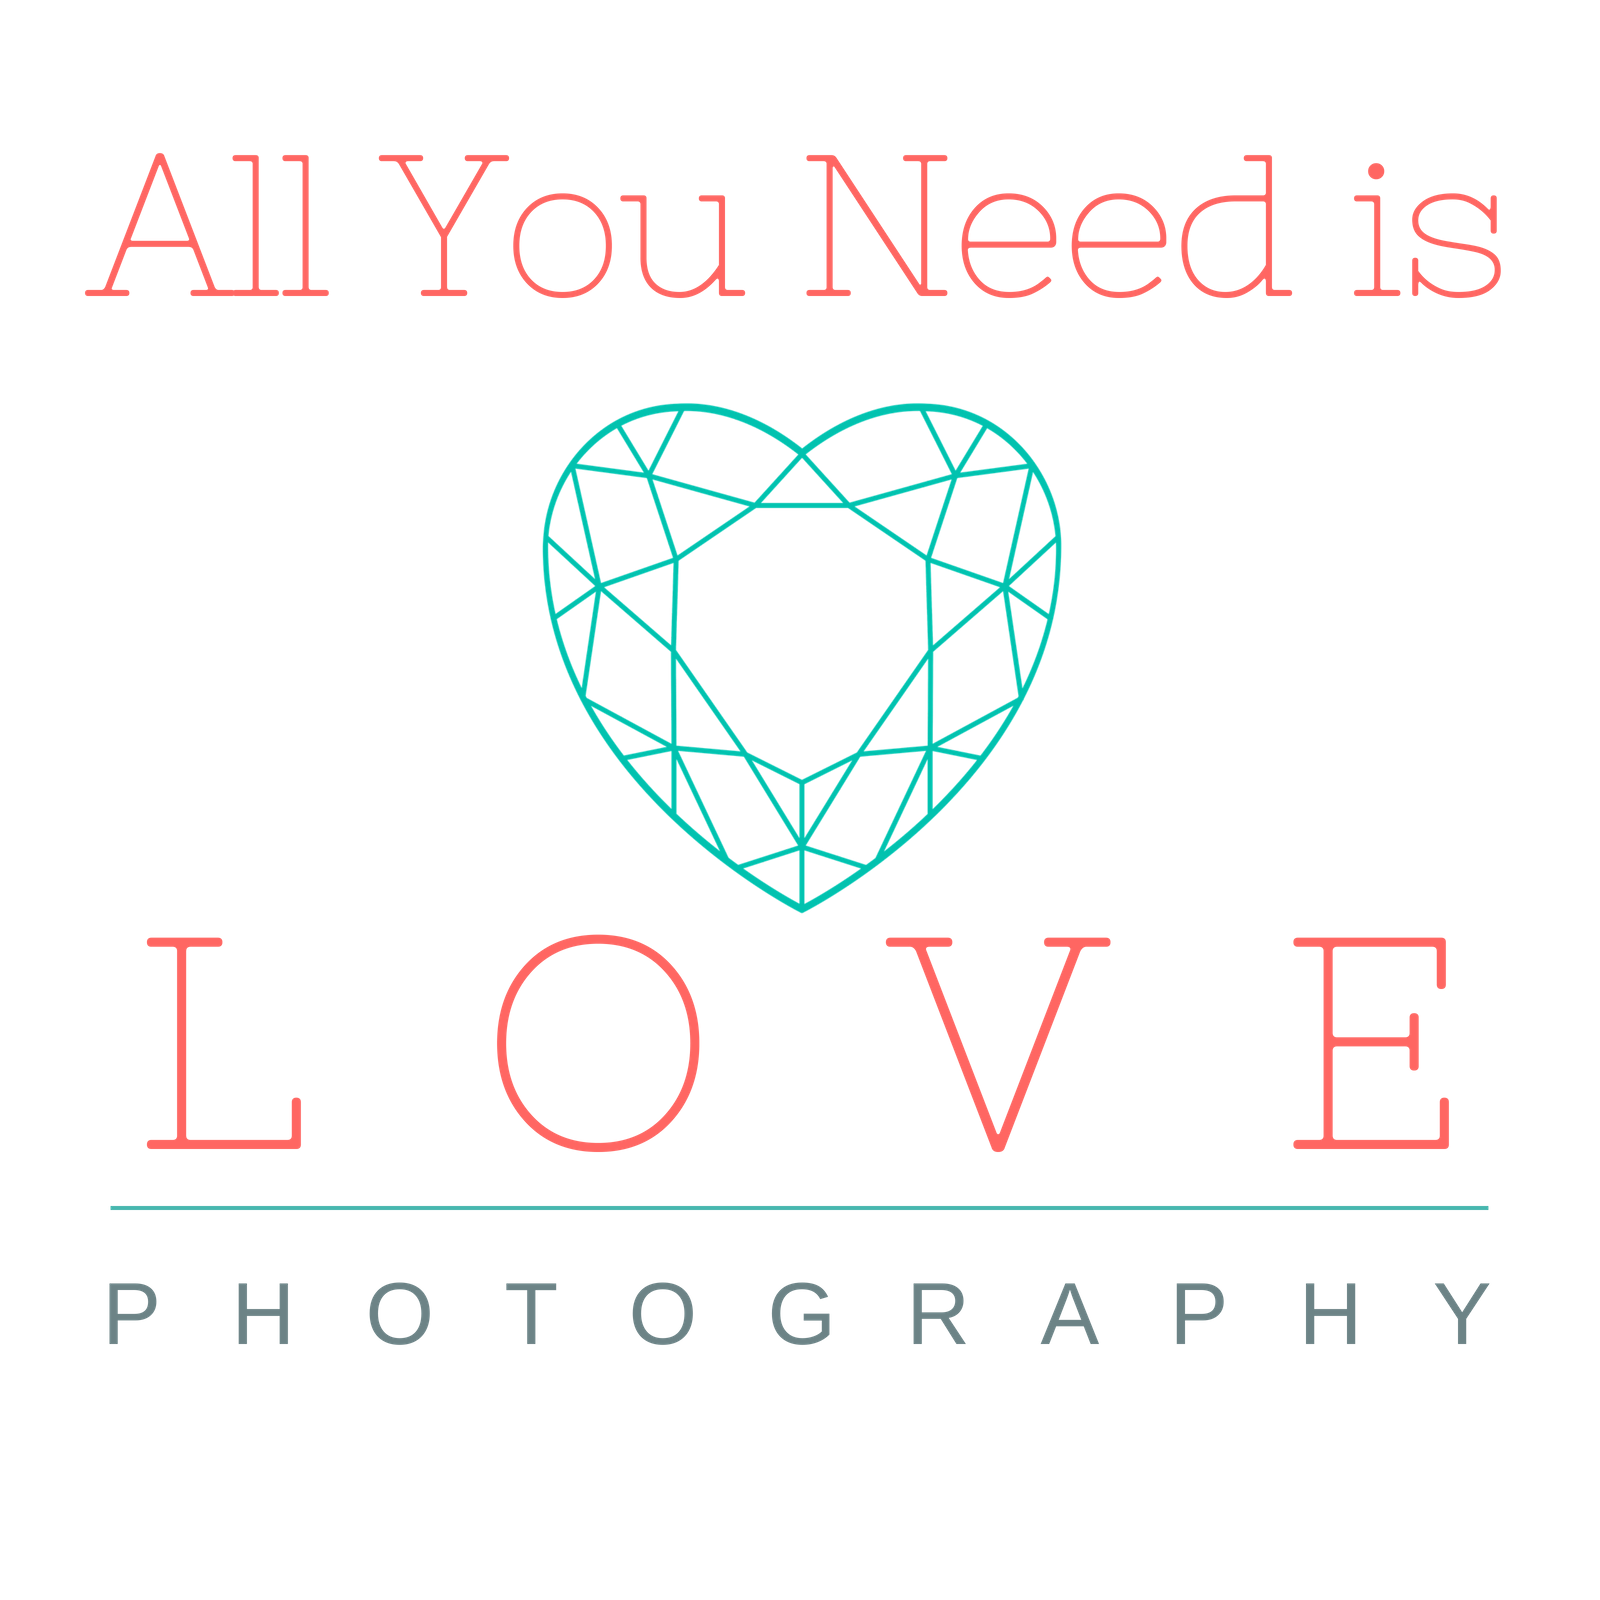 All You Need is Love Photography